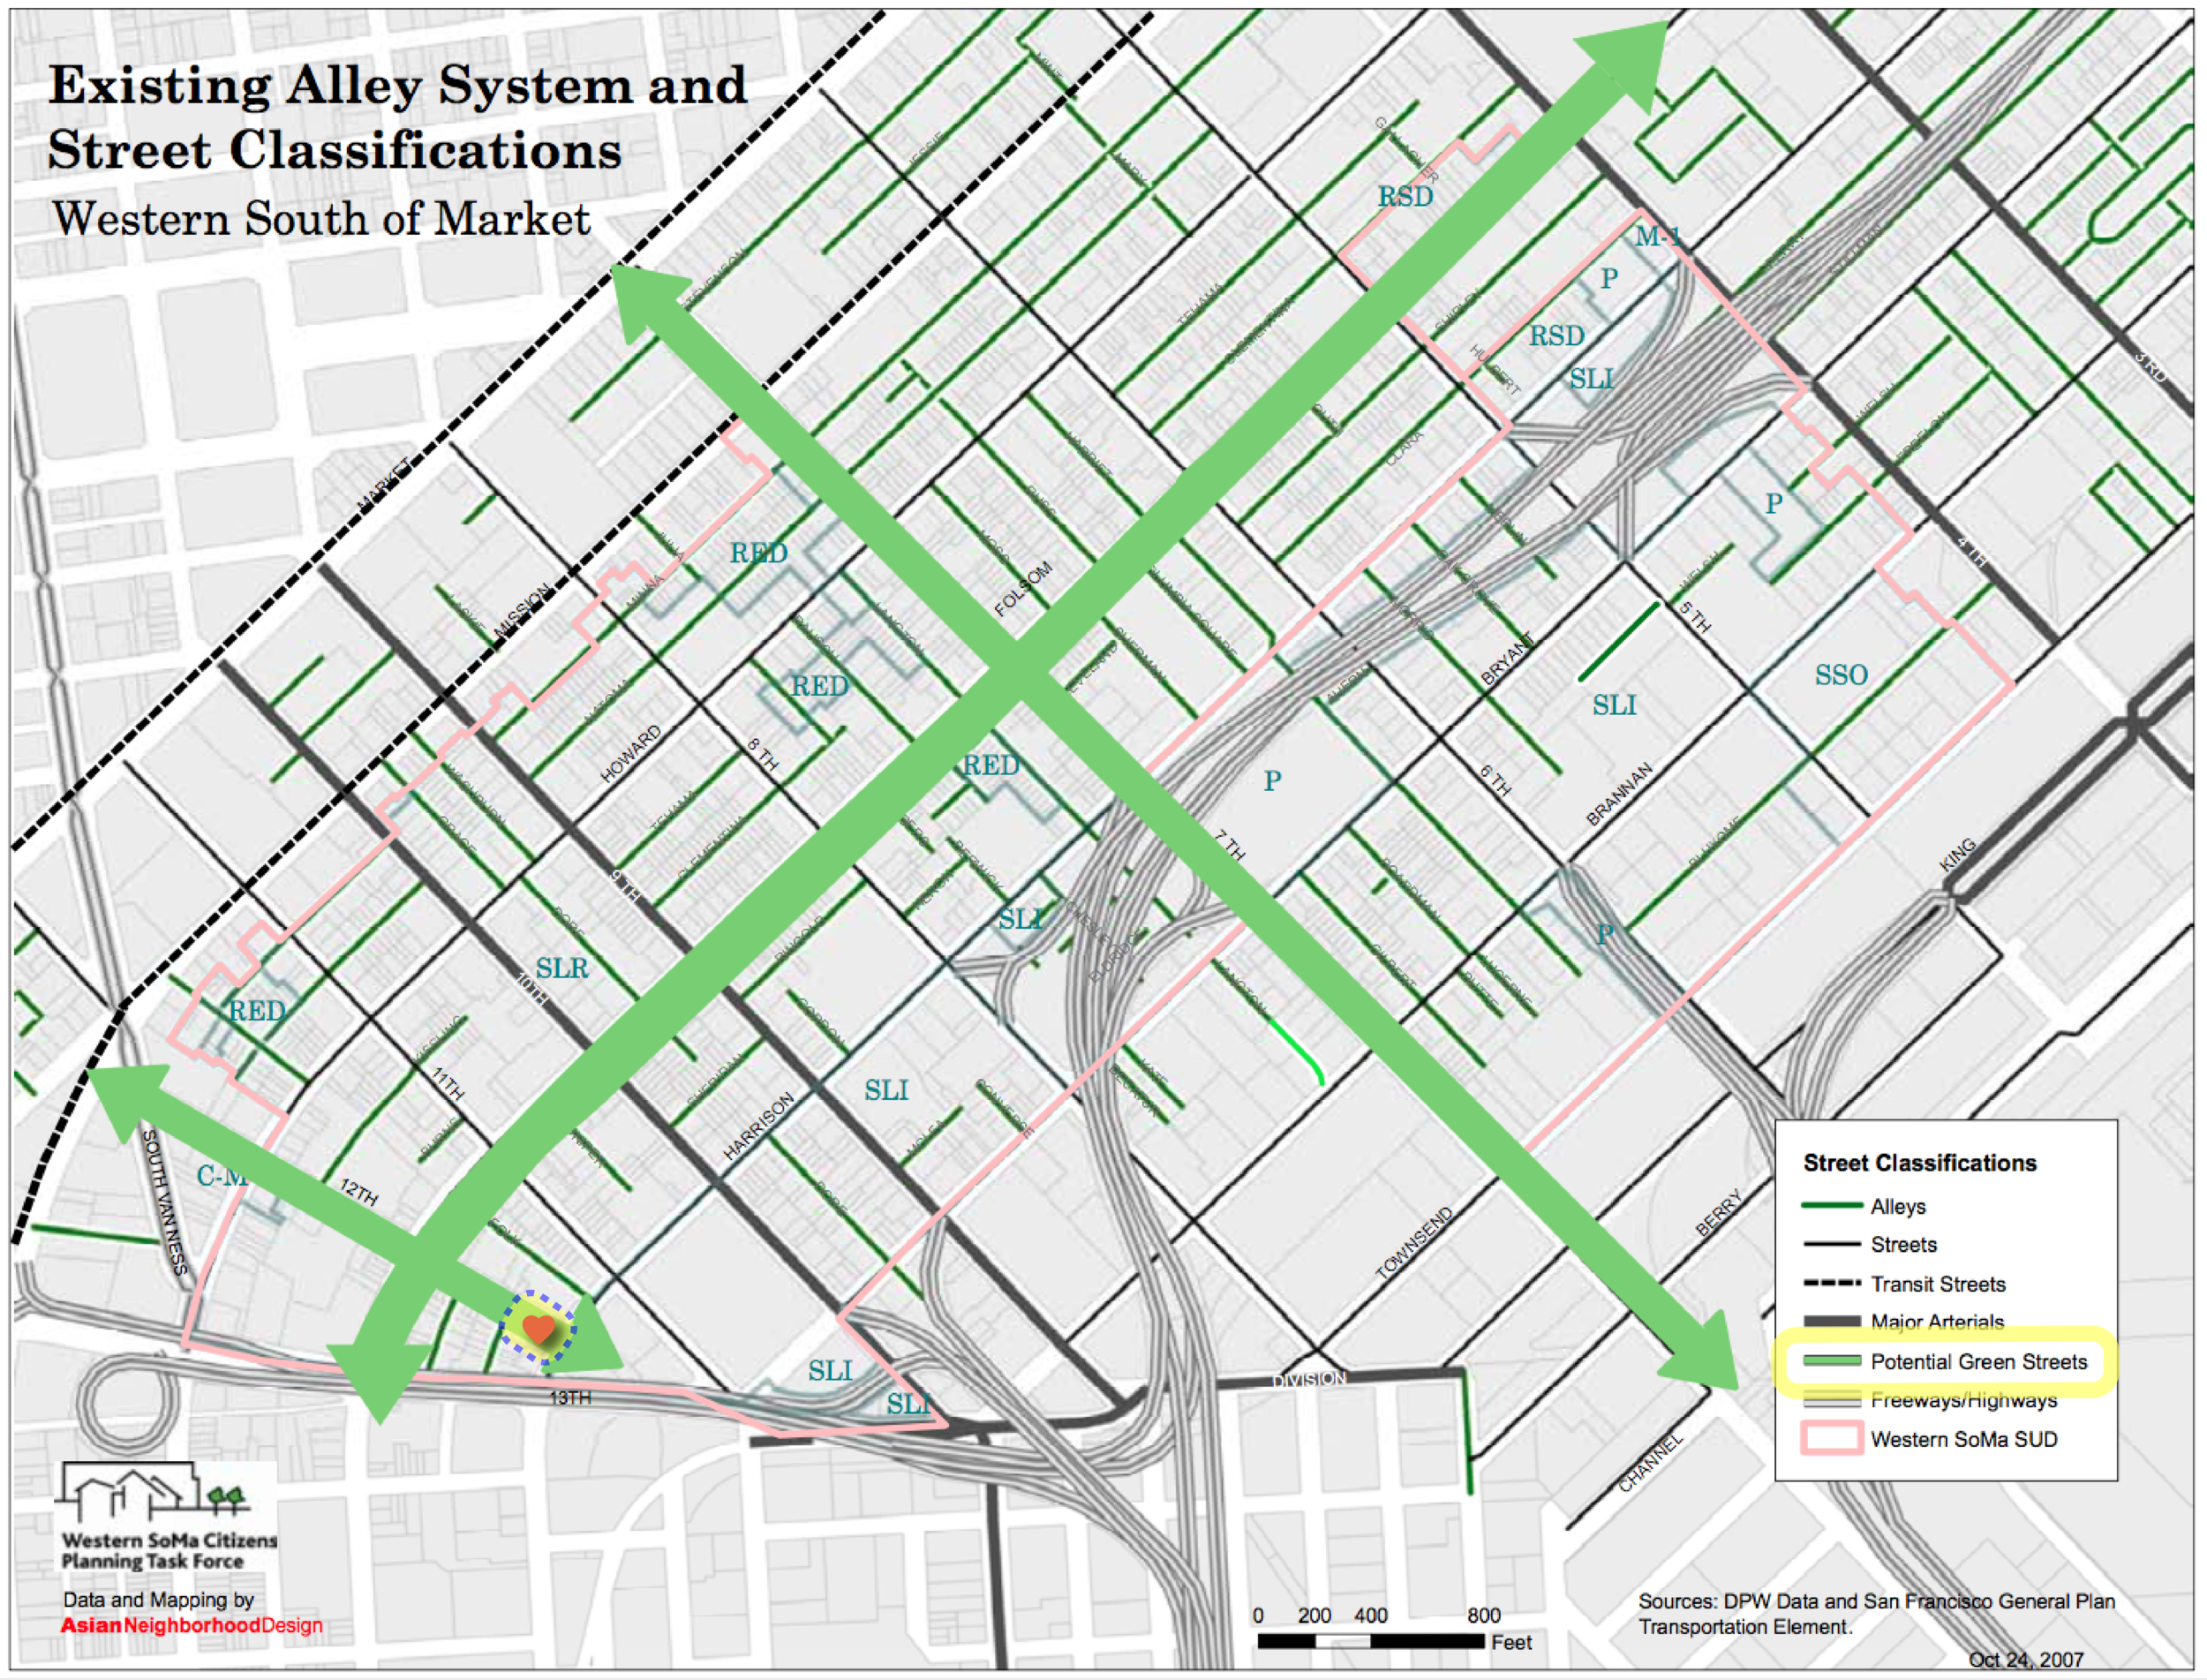 12th St prioritized as a potential green street